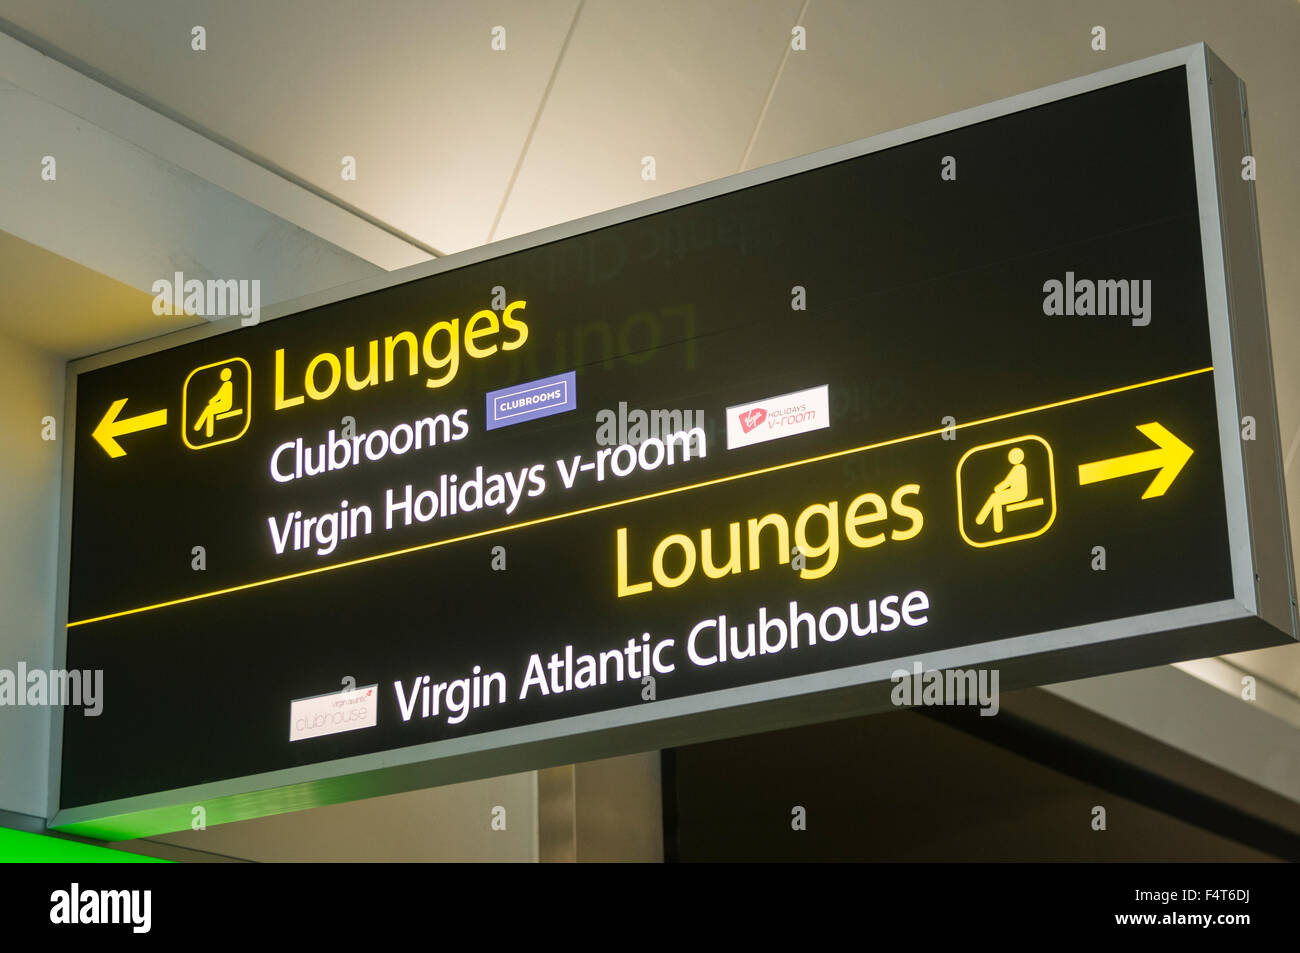 Signs giving the directions to airport lounges, including the Virgin Holidays v-room and Atlantic Clubhouse - Stock Image